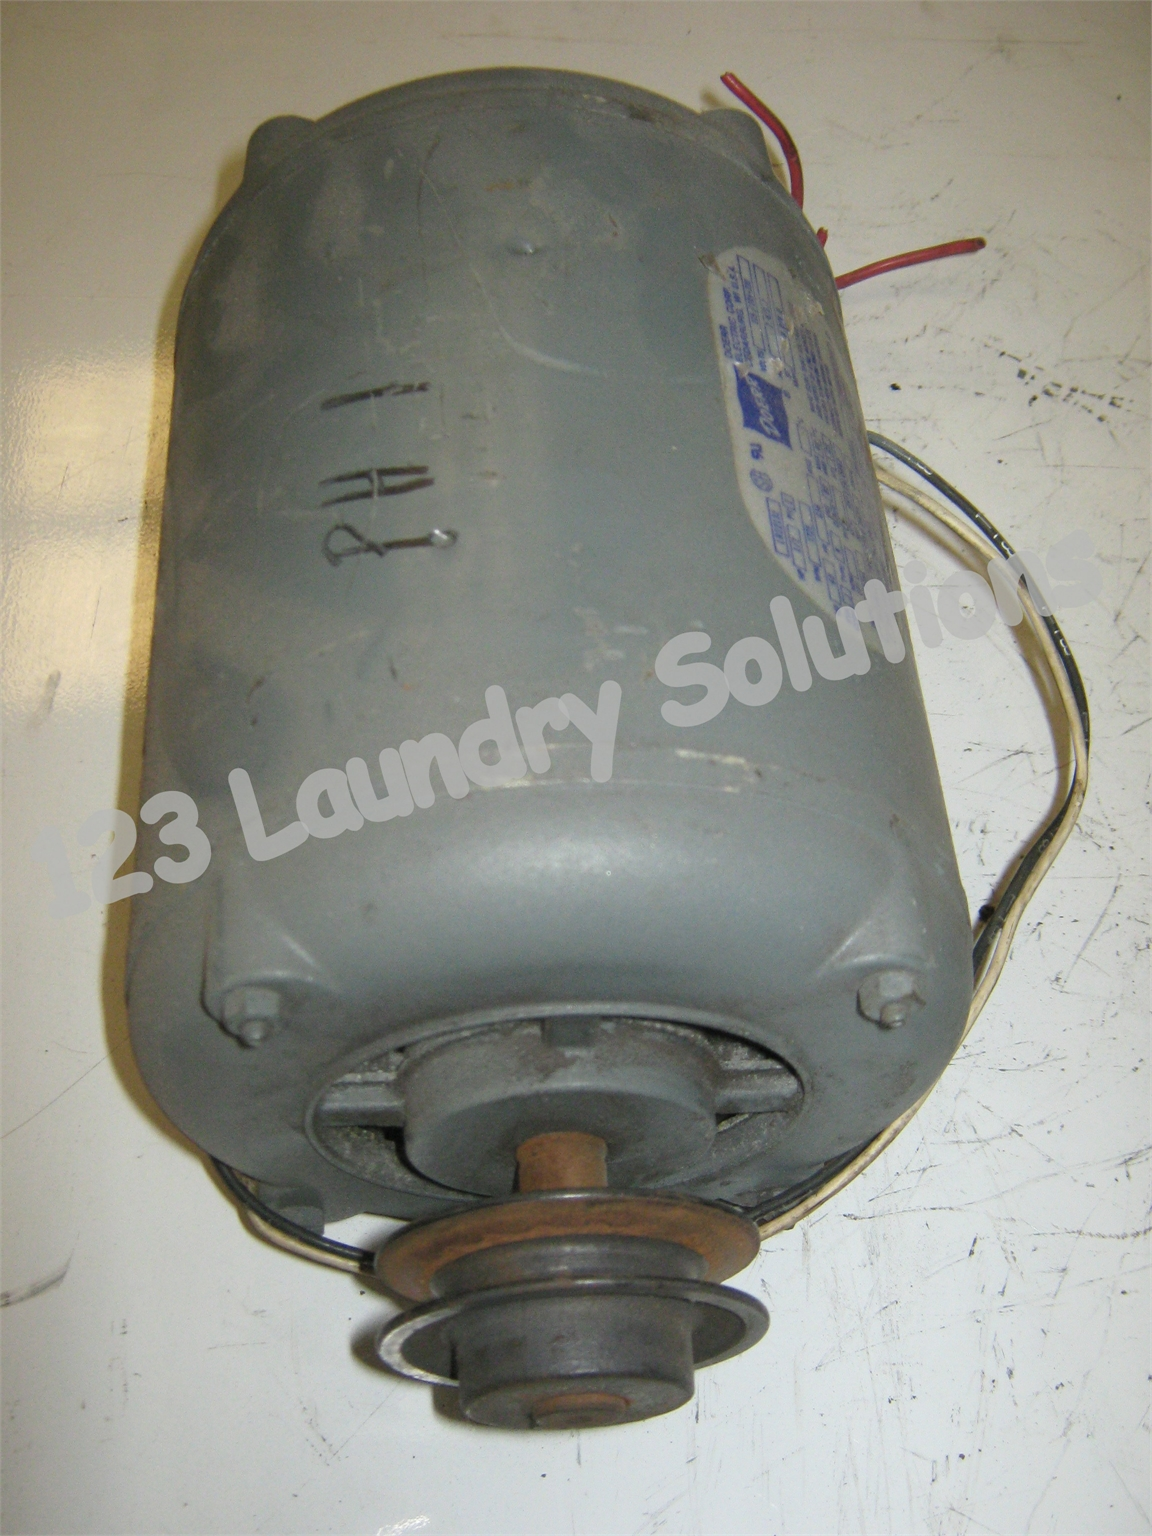 Milnor Front Load Washer 35lb Motor 1ph 220v 39d105aae 63 Dryer Wiring Diagram 123 Laundry Solutionsimproving Your Business Is Our